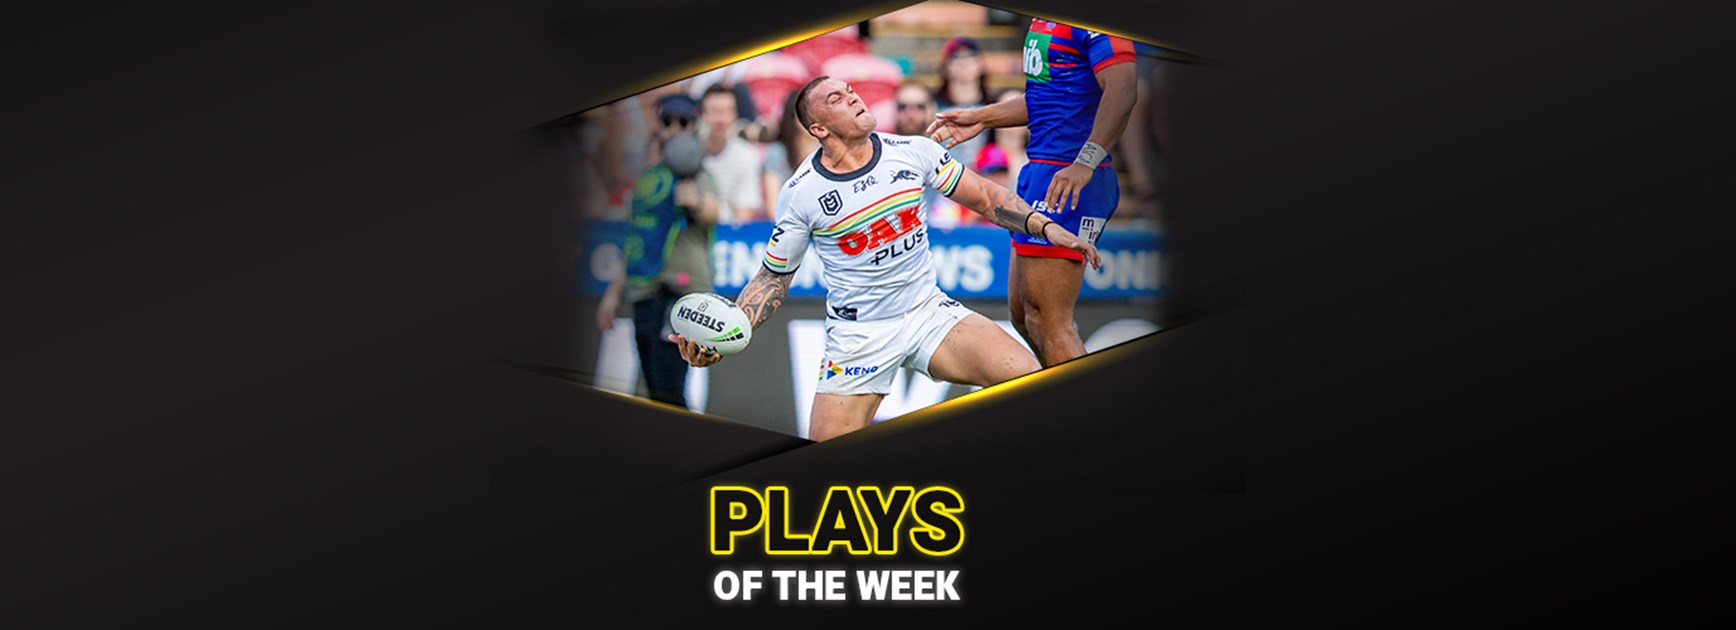 Hertz Plays of the Week: Round 2